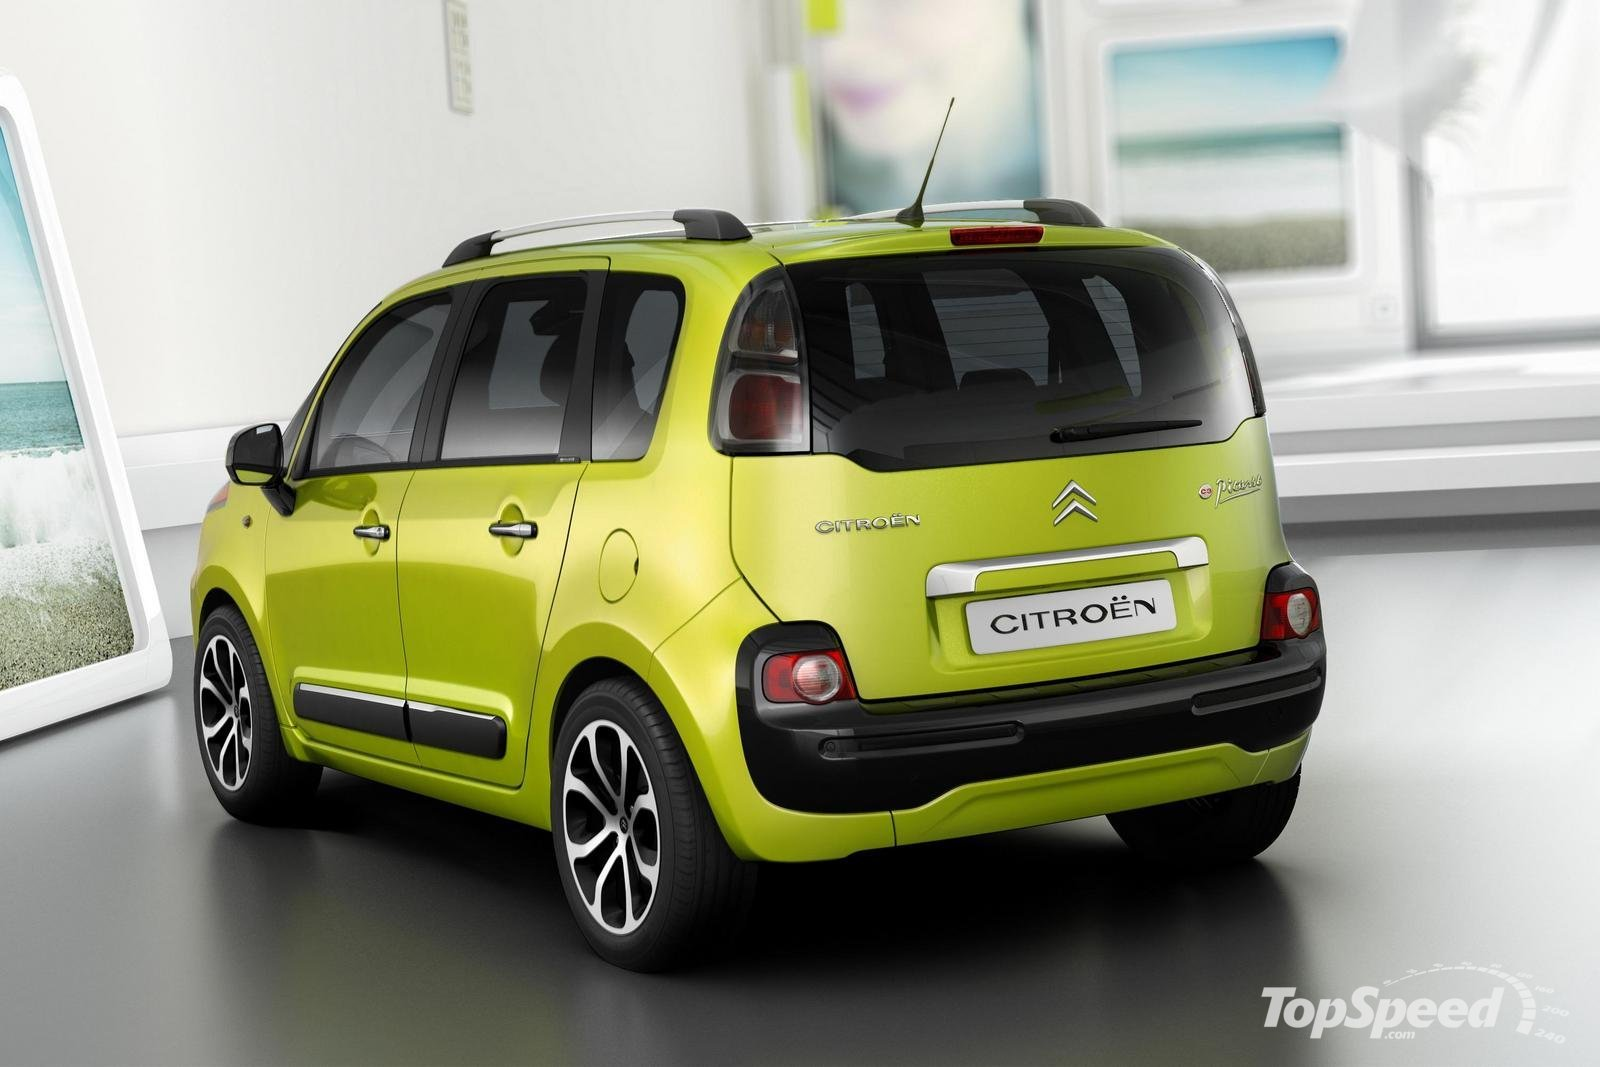 Citroen C3 Picasso Wallpaper For Ios